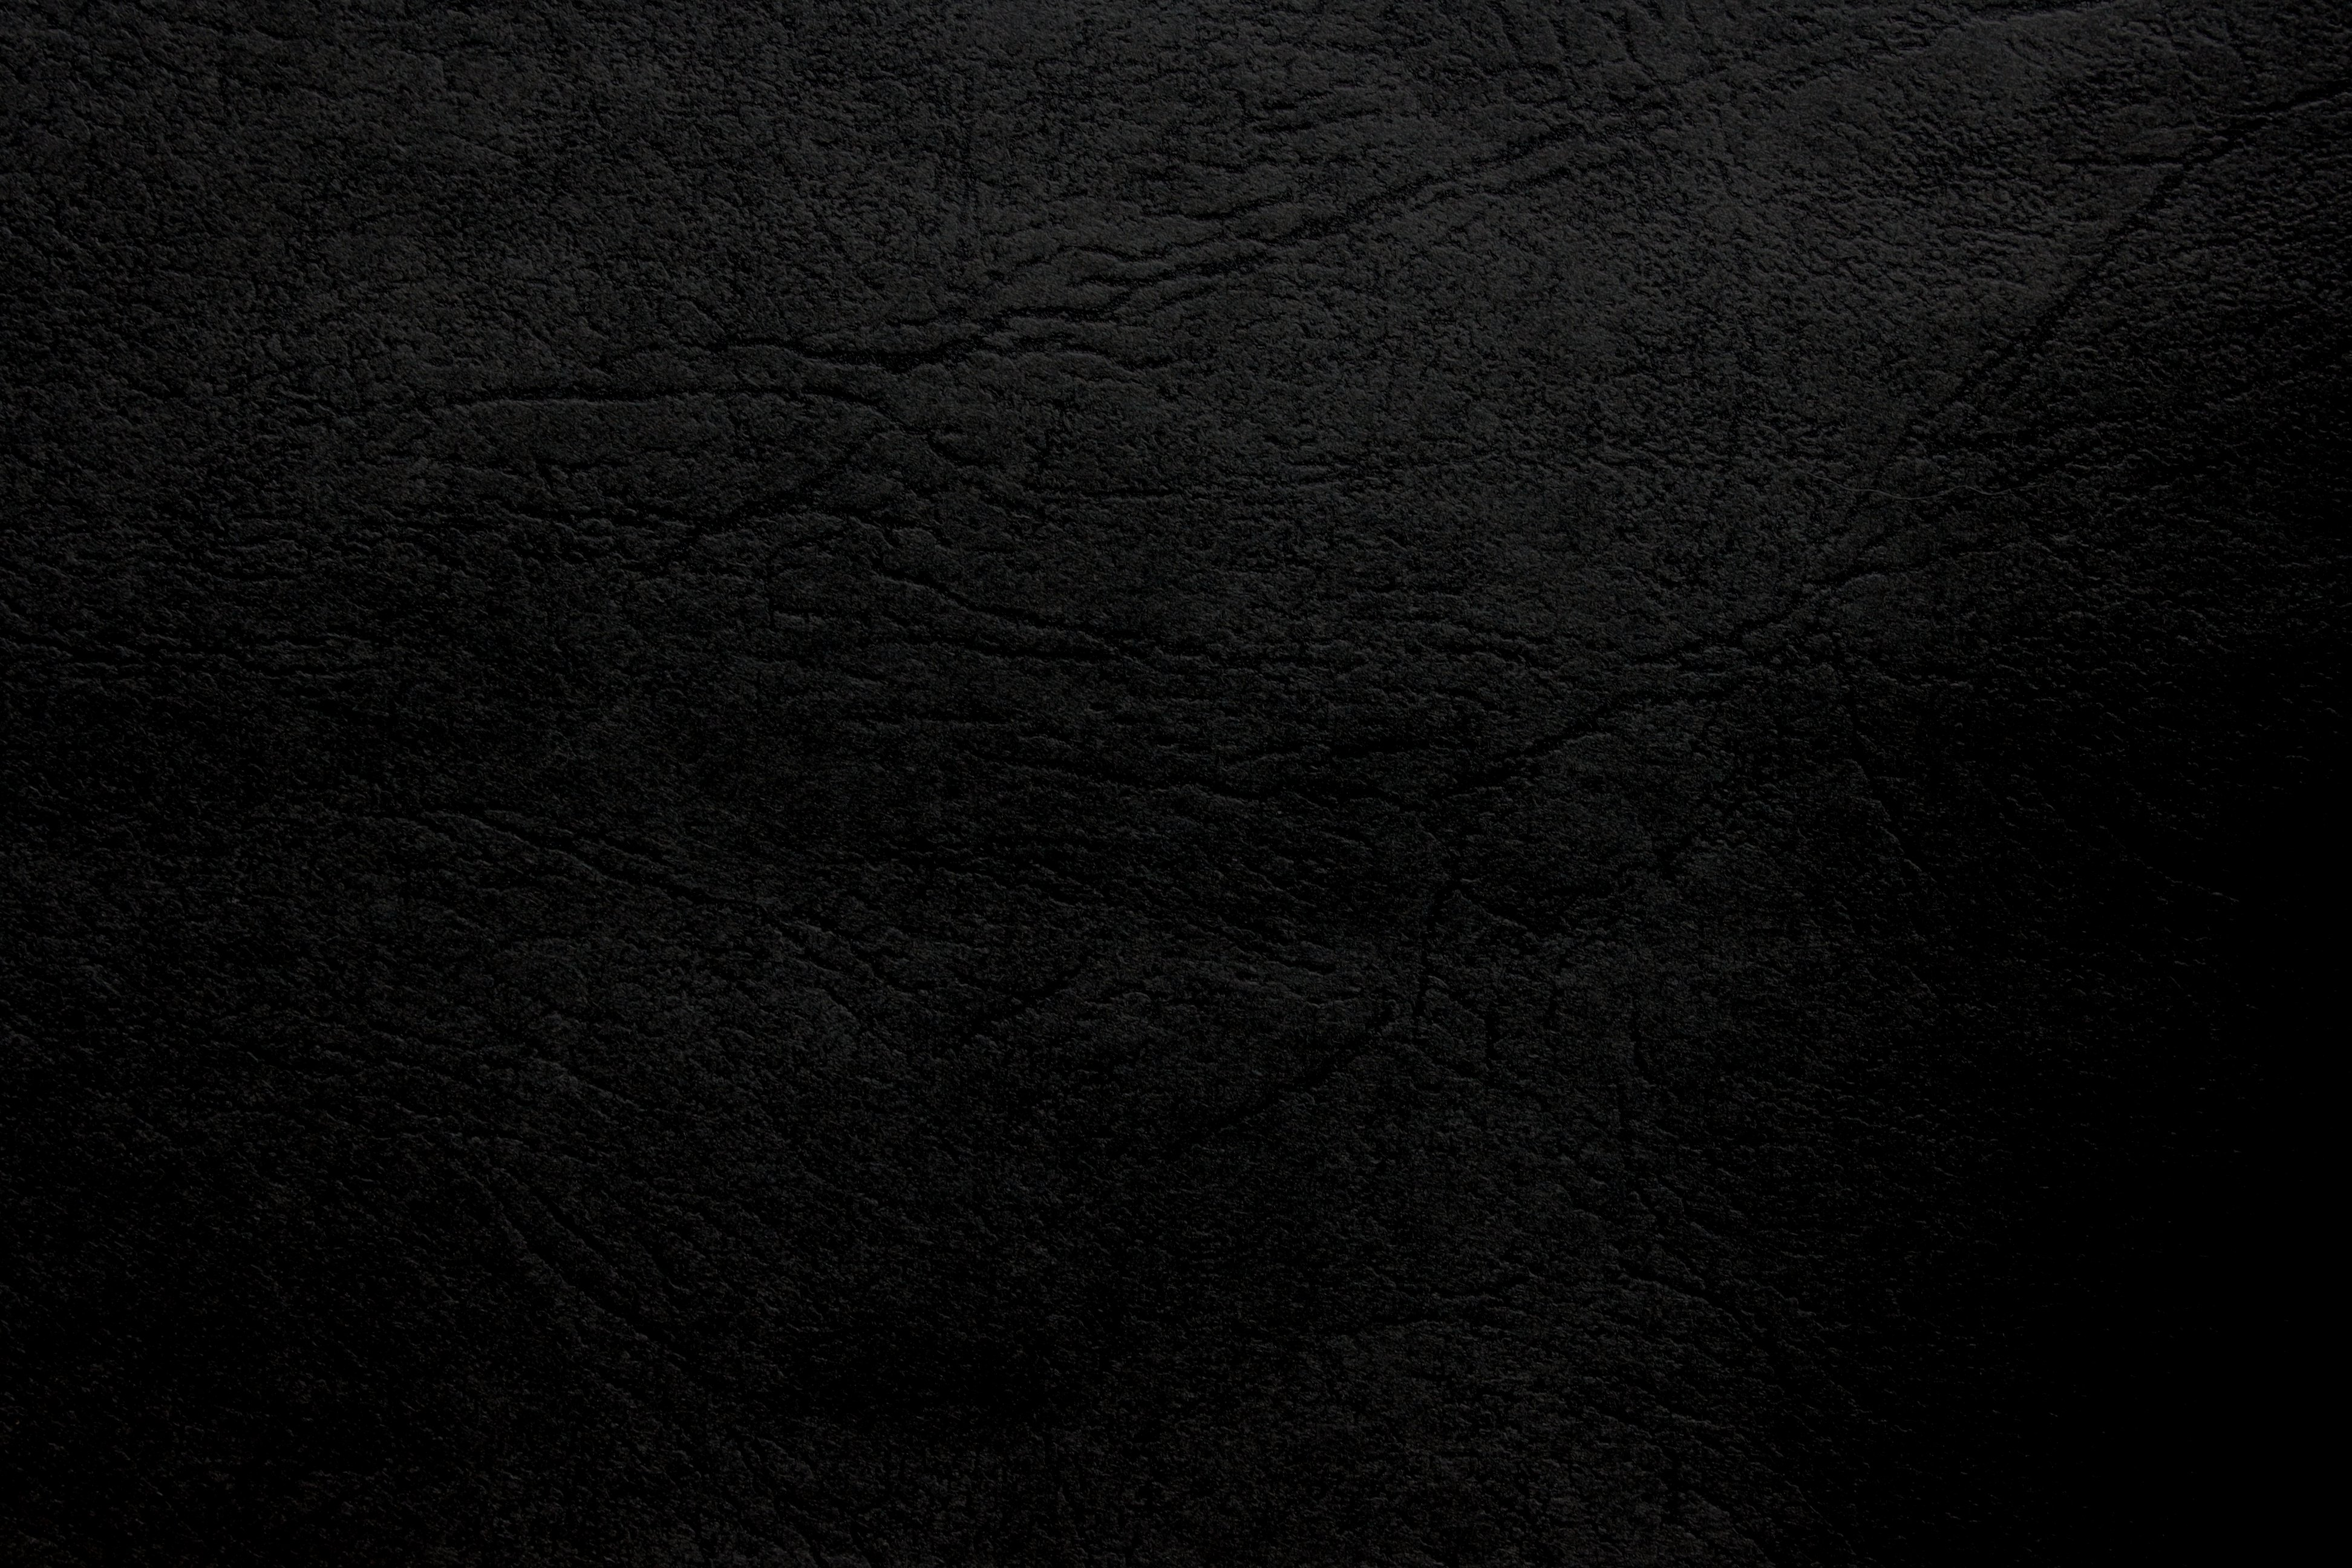 Leather Textures clipart Free Photo Black Resolution 3888